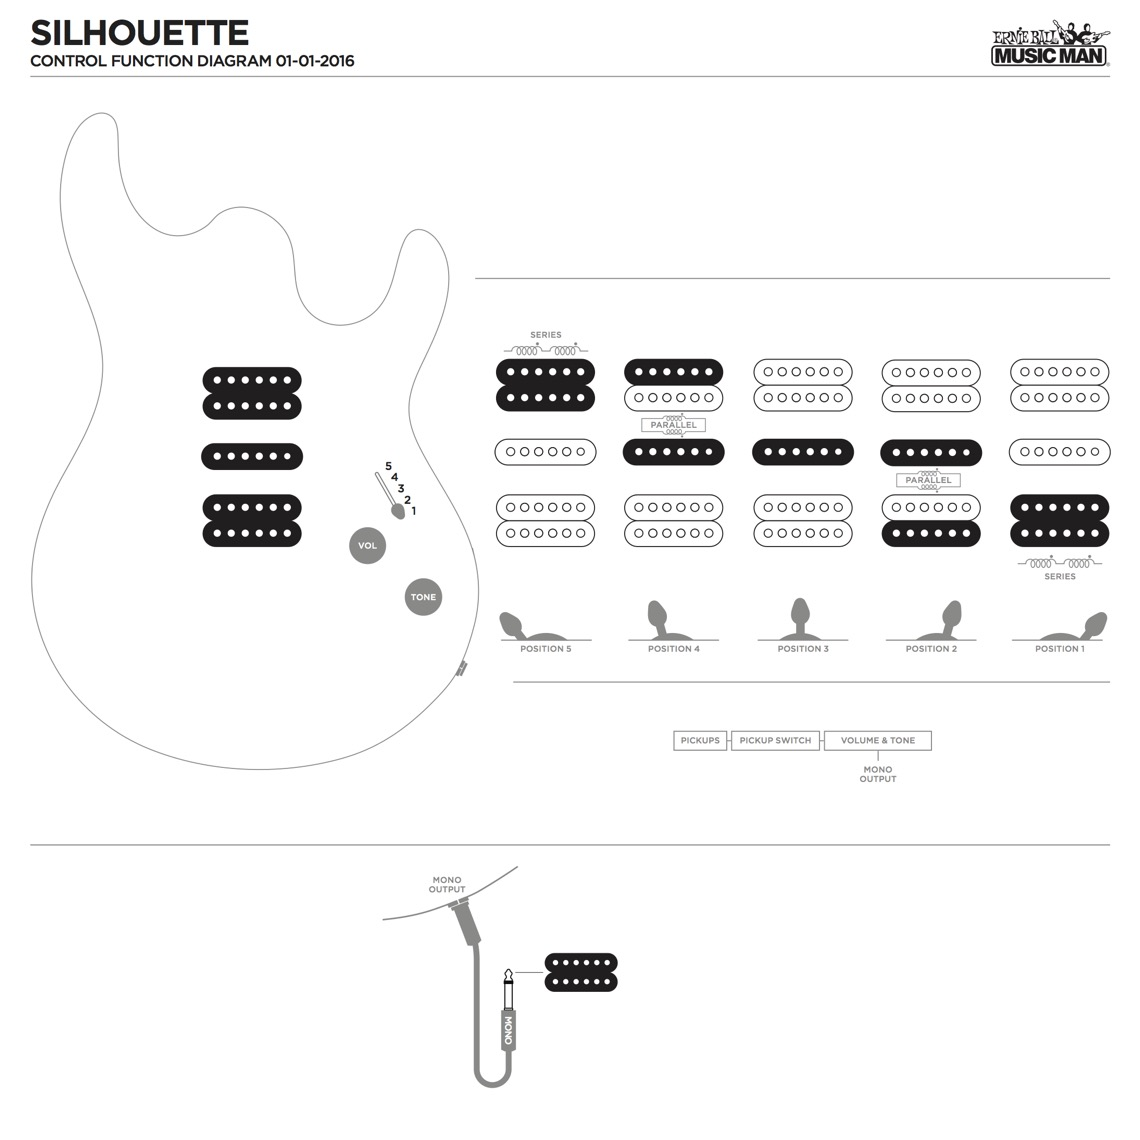 Humbucker Wiring Diagram 400 Art Trusted Silhouette Guitars Ernie Ball Music Man Mounting